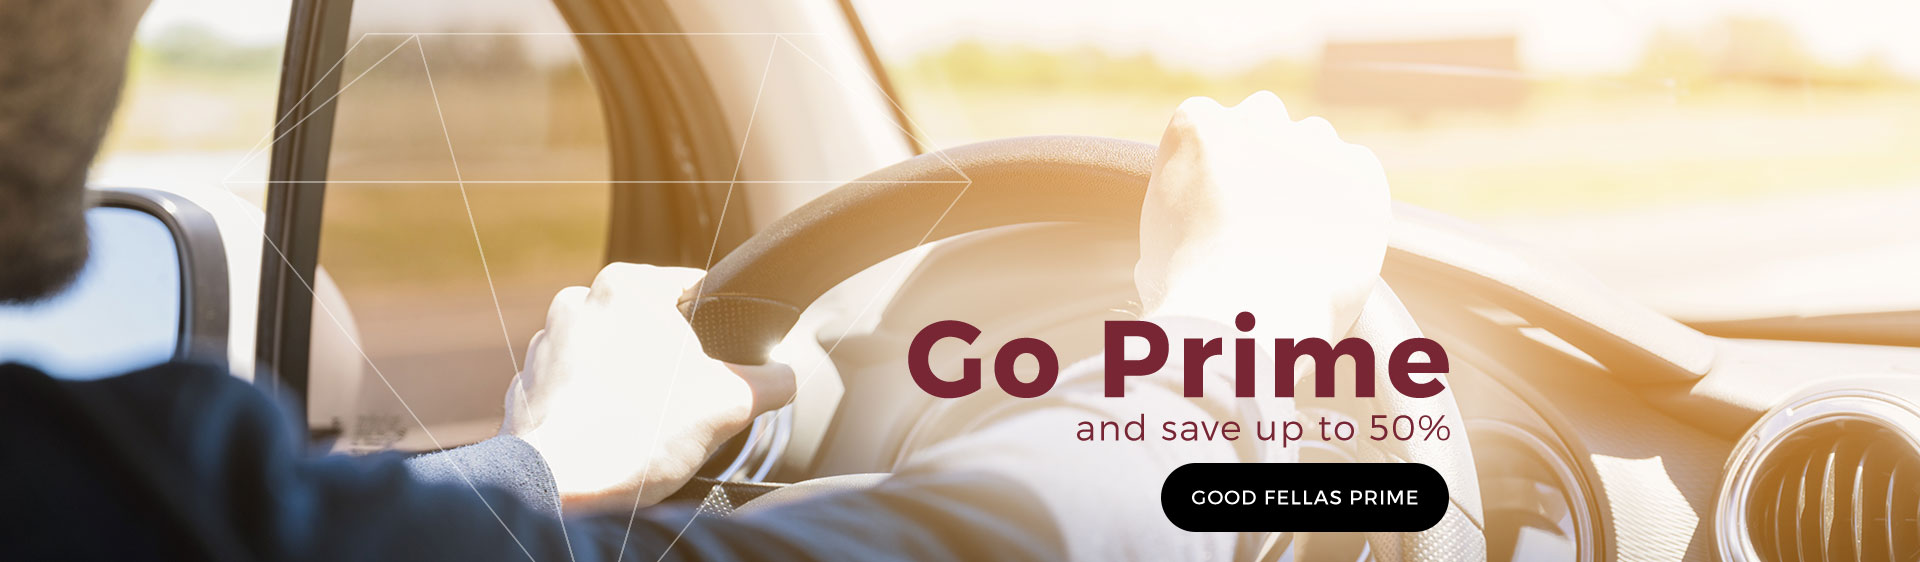 Go Prime and save up to 50%